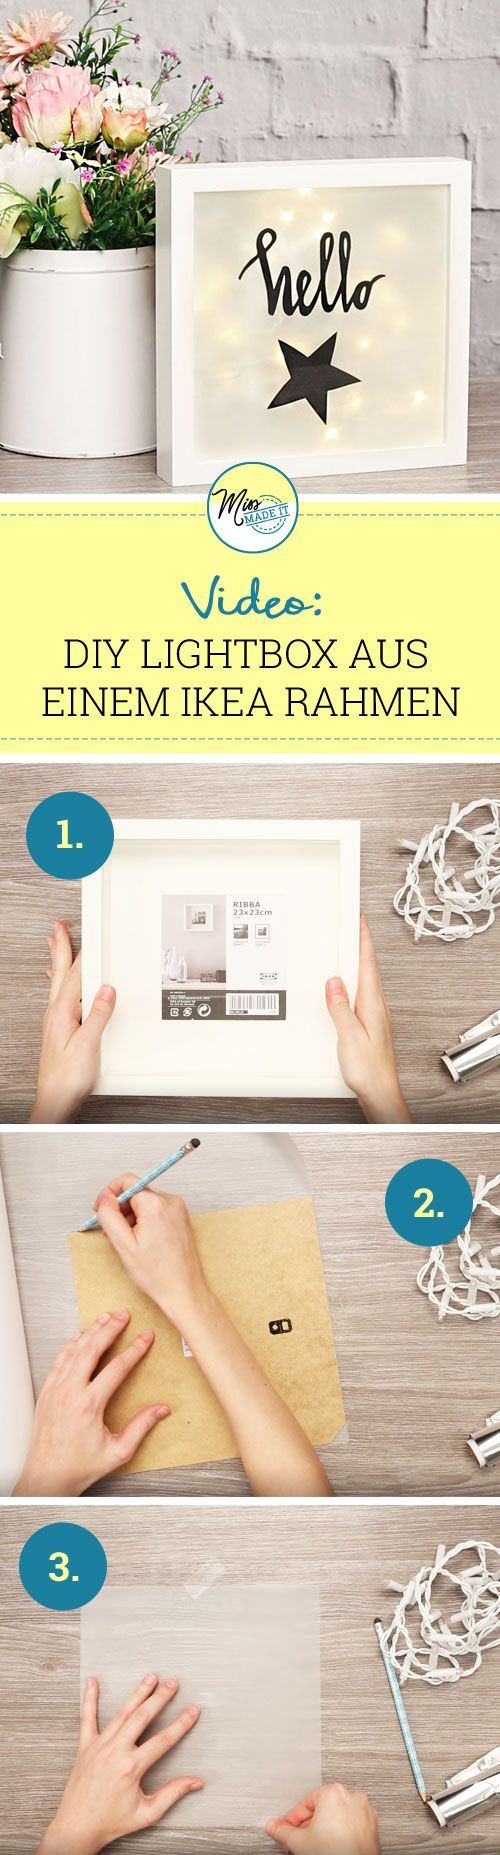 345 best Basteln images on Pinterest | Creative crafts, Cool ideas ...